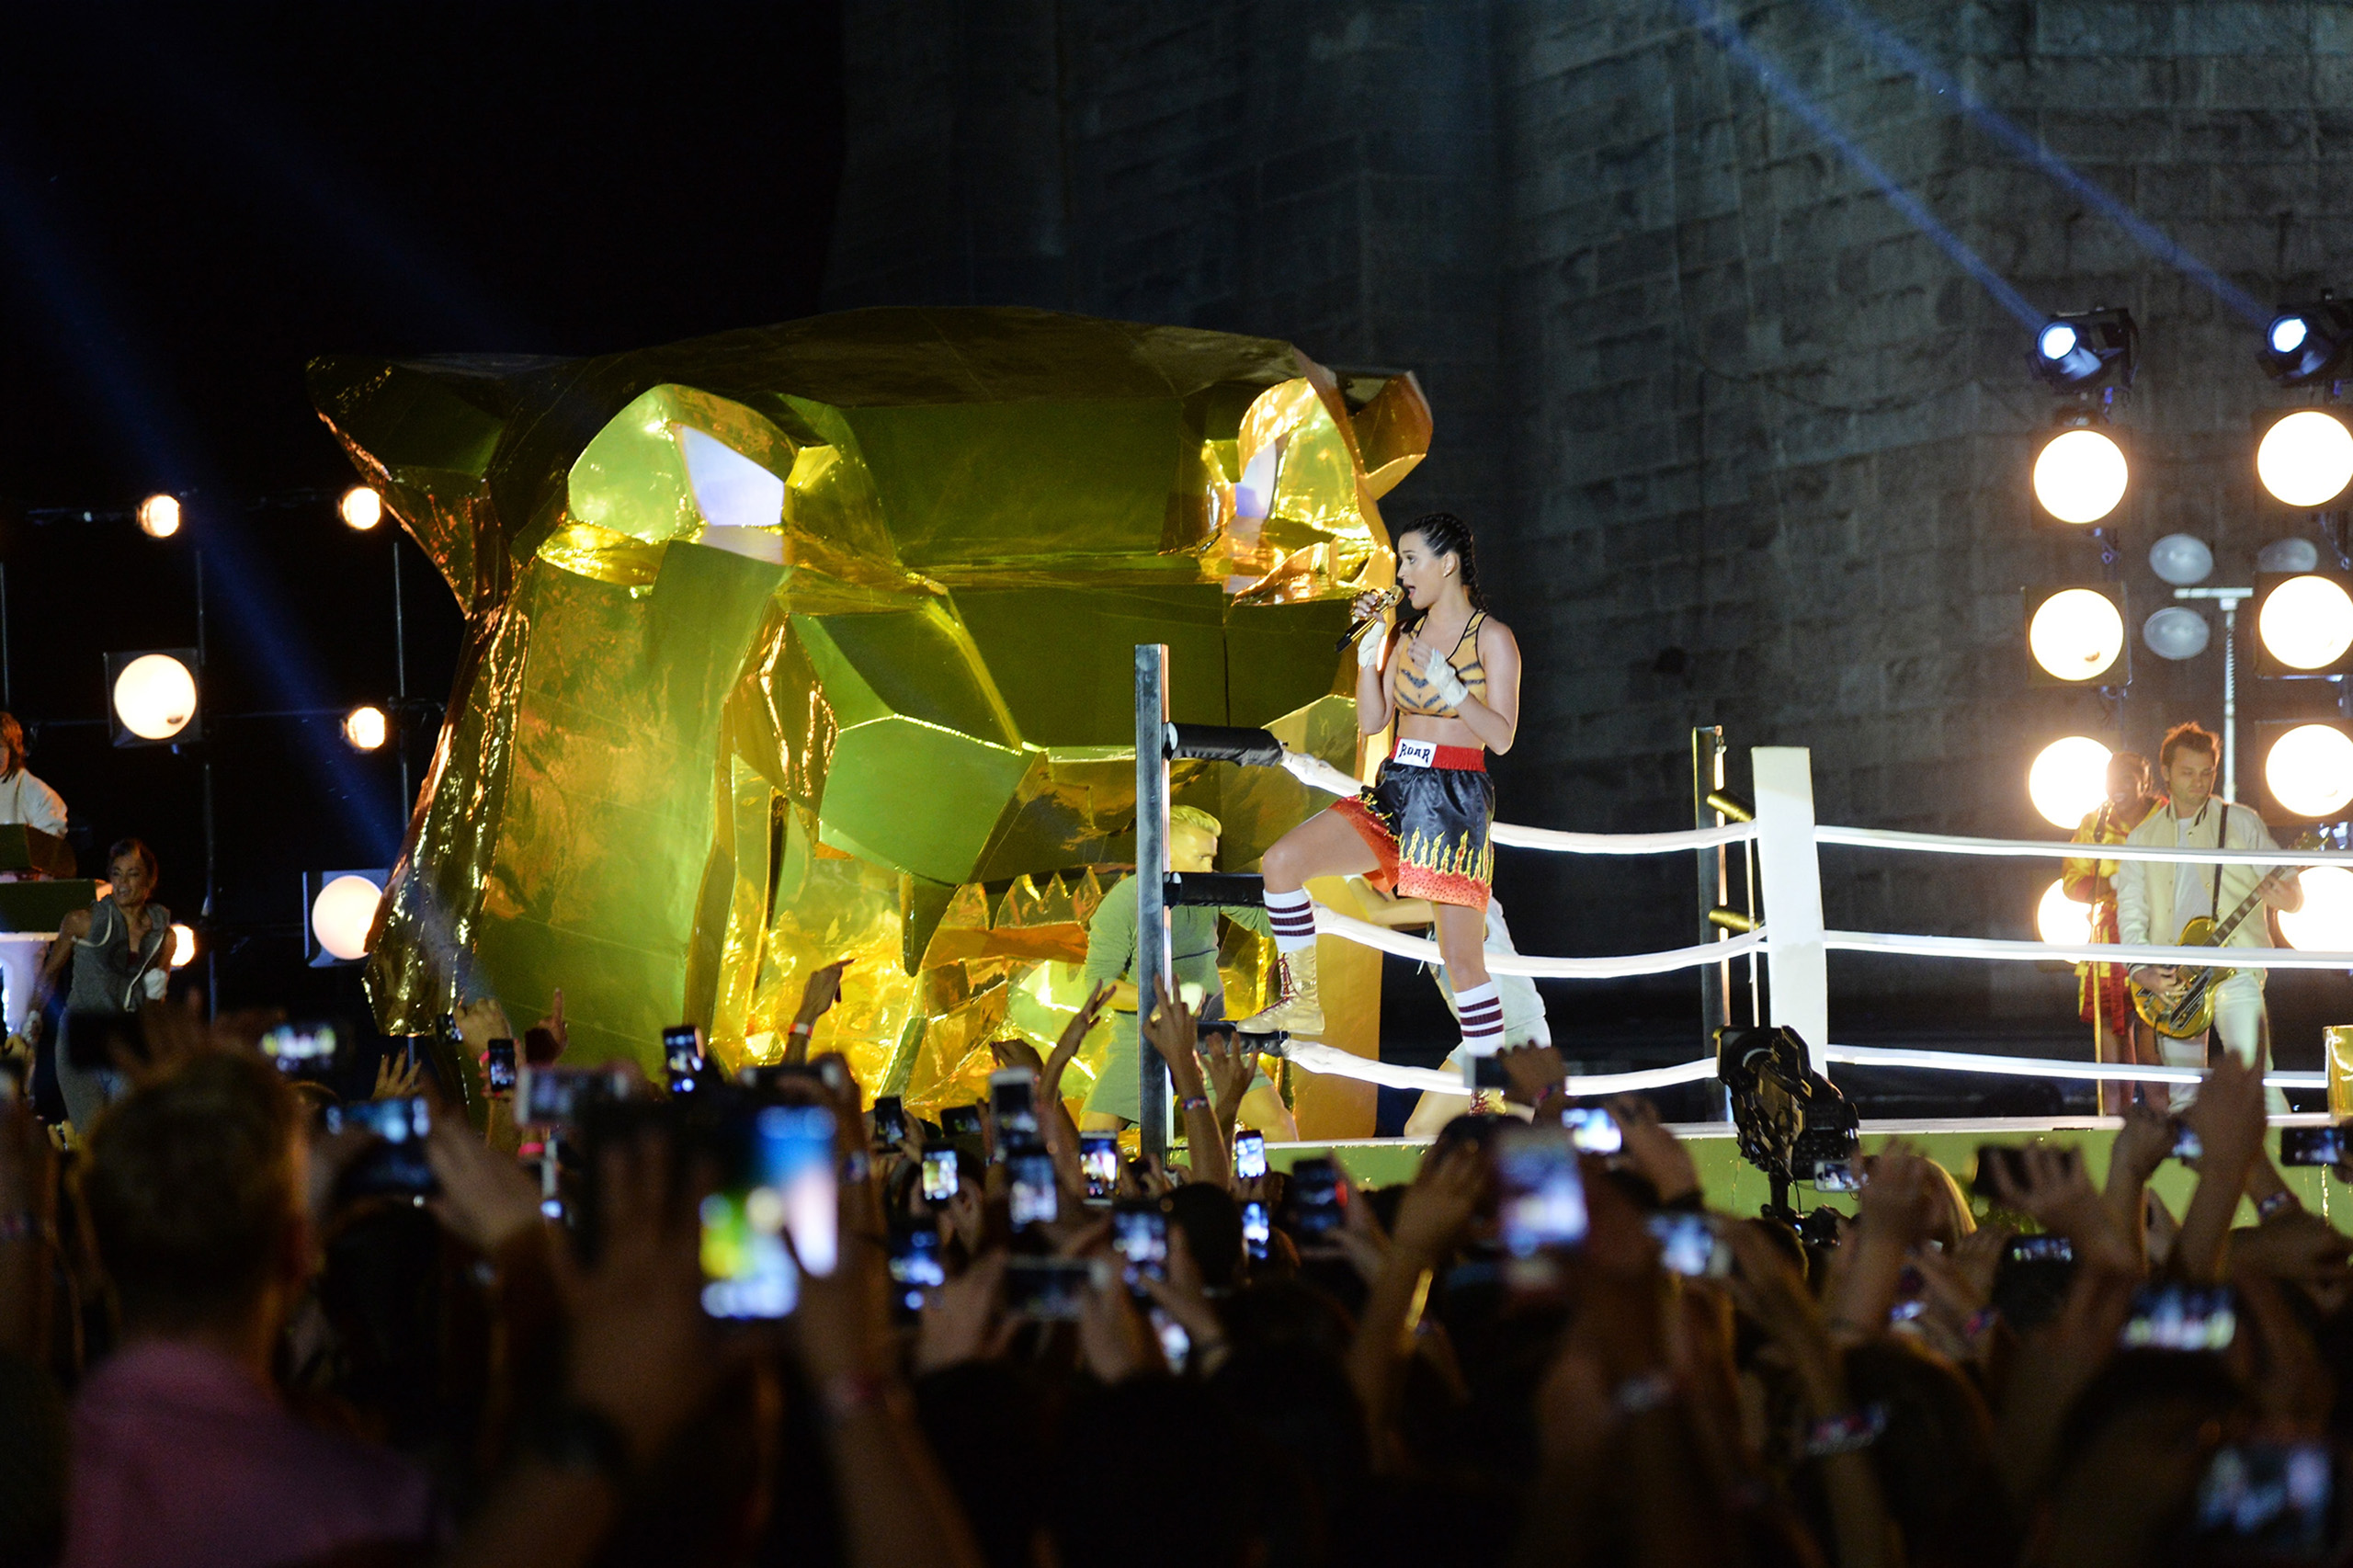 Katy Perry performs during the 2013 MTV Video Music Awards in Empire-Fulton Ferry Park in the Brooklyn borough of New York City, on Aug. 25, 2013.